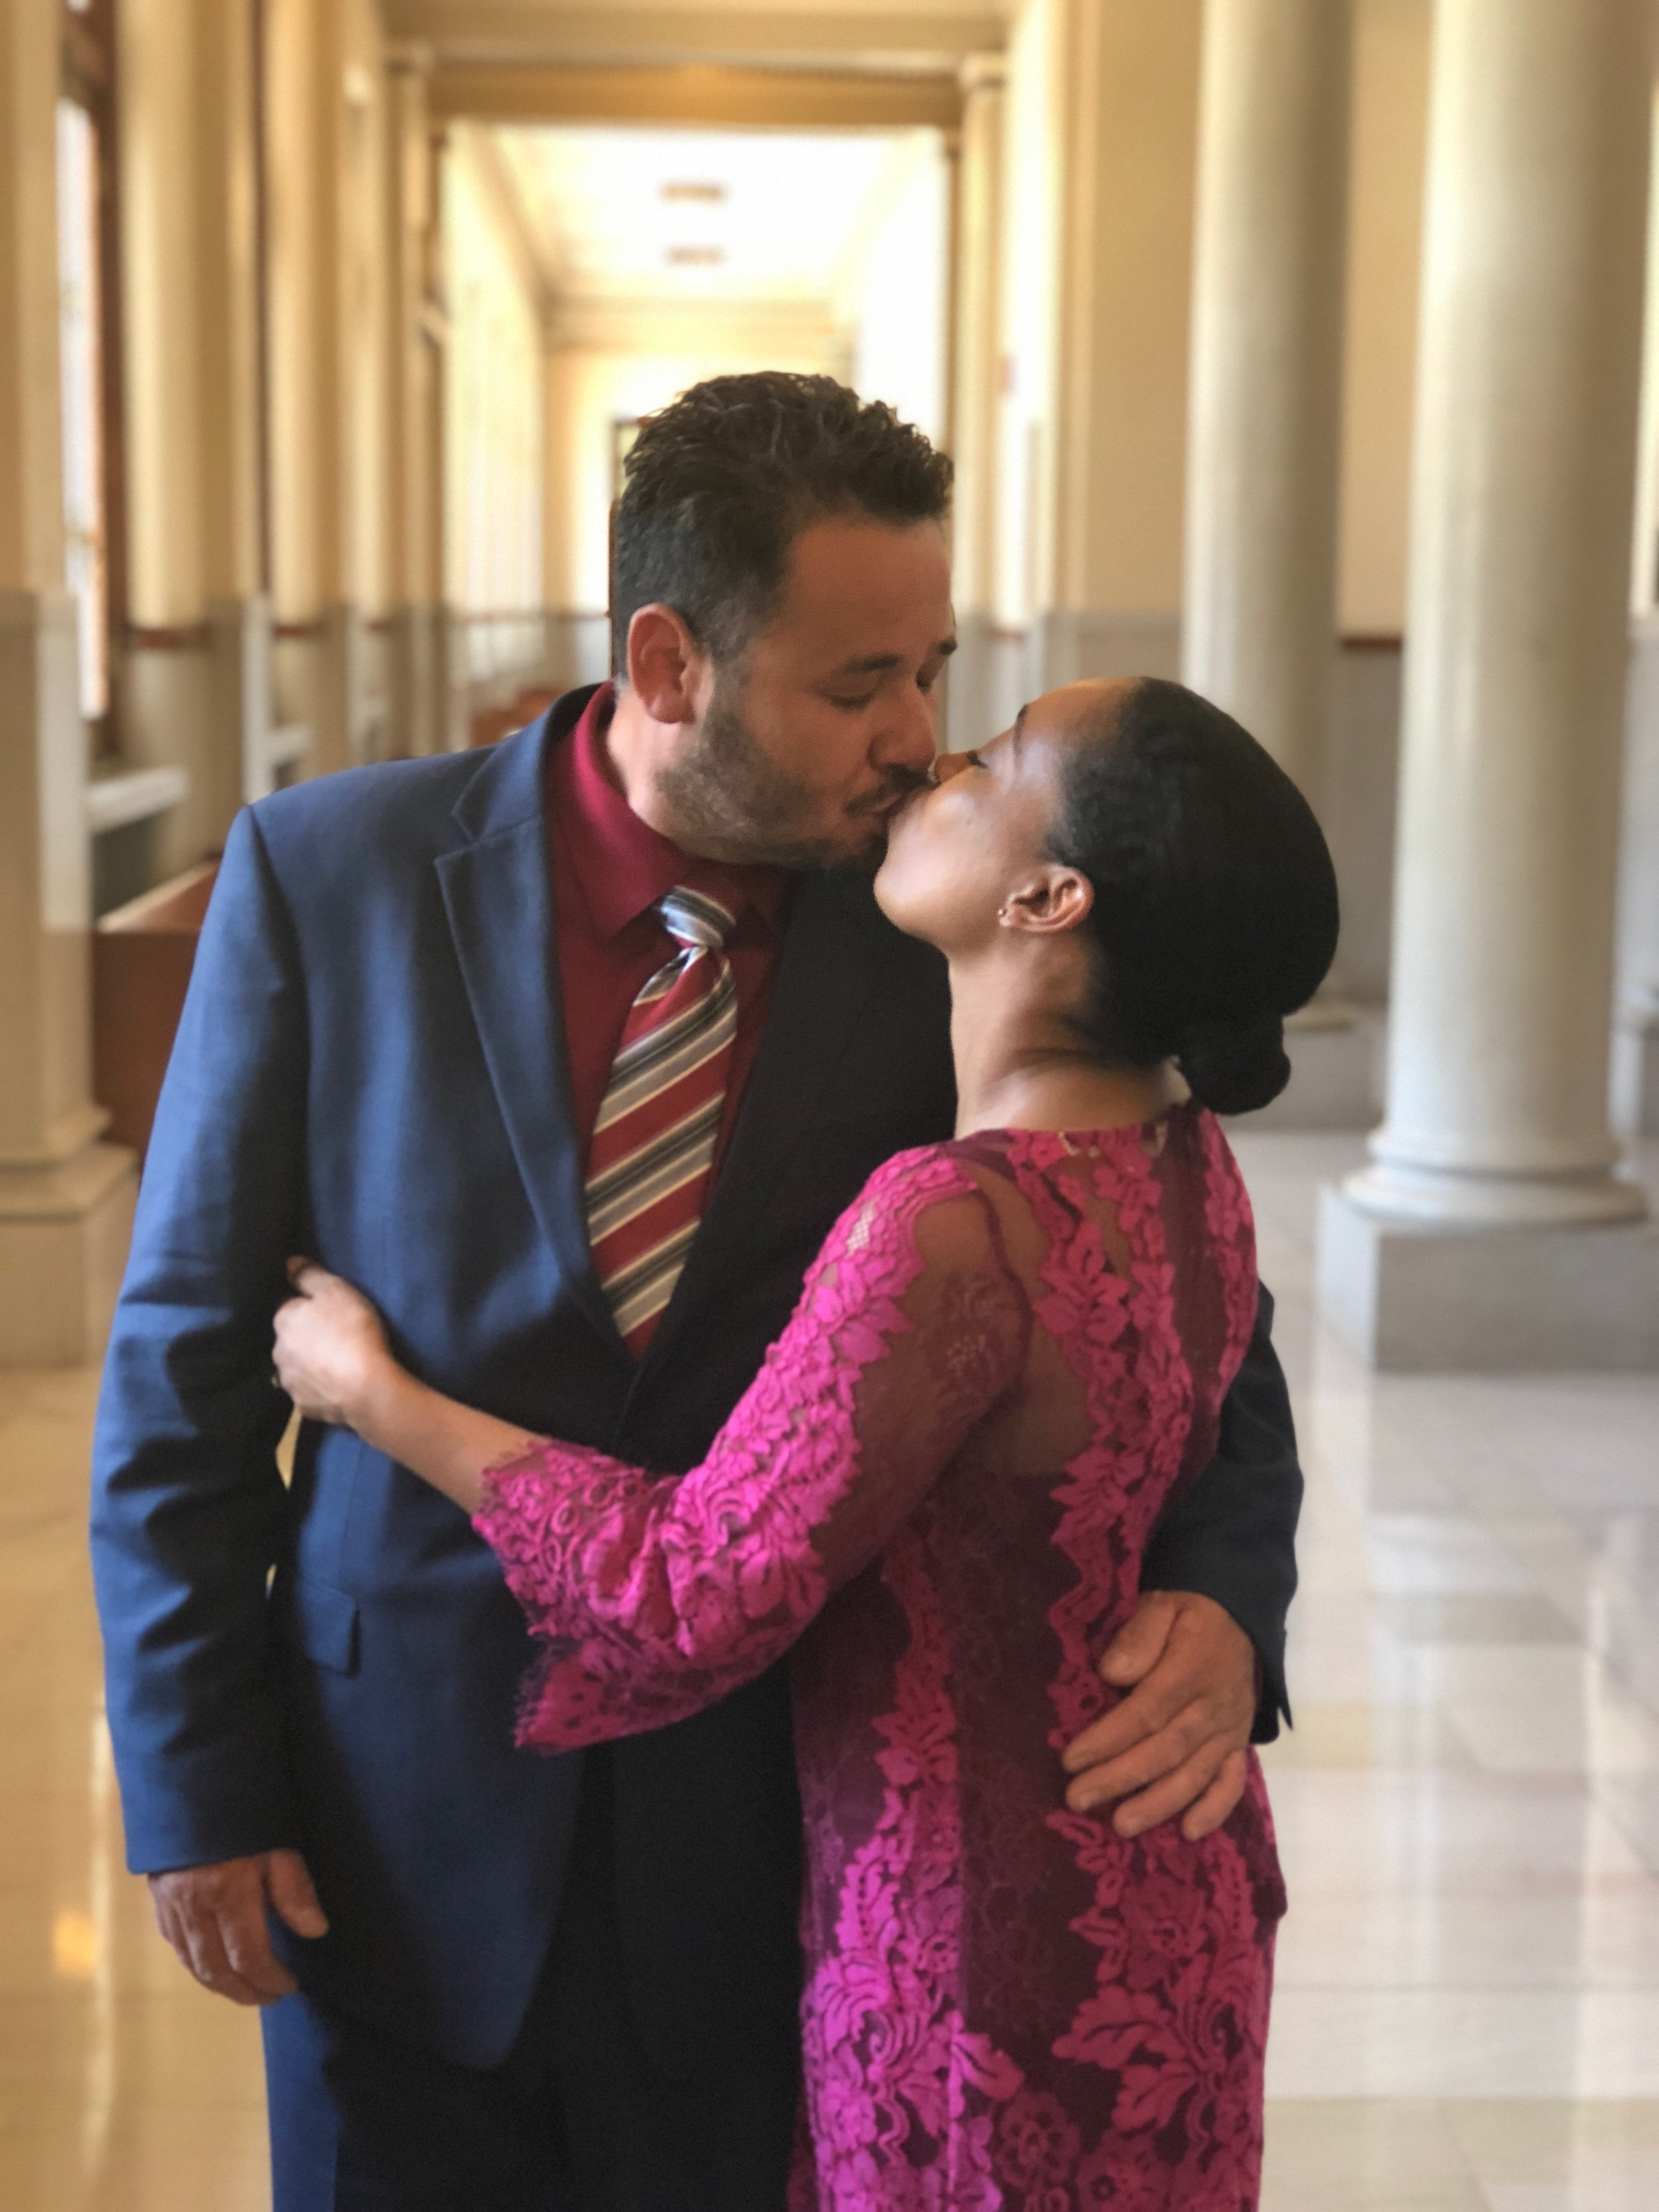 Andrea Fenise Memphis Fashion Blogger shares why she decided to have a court wedding